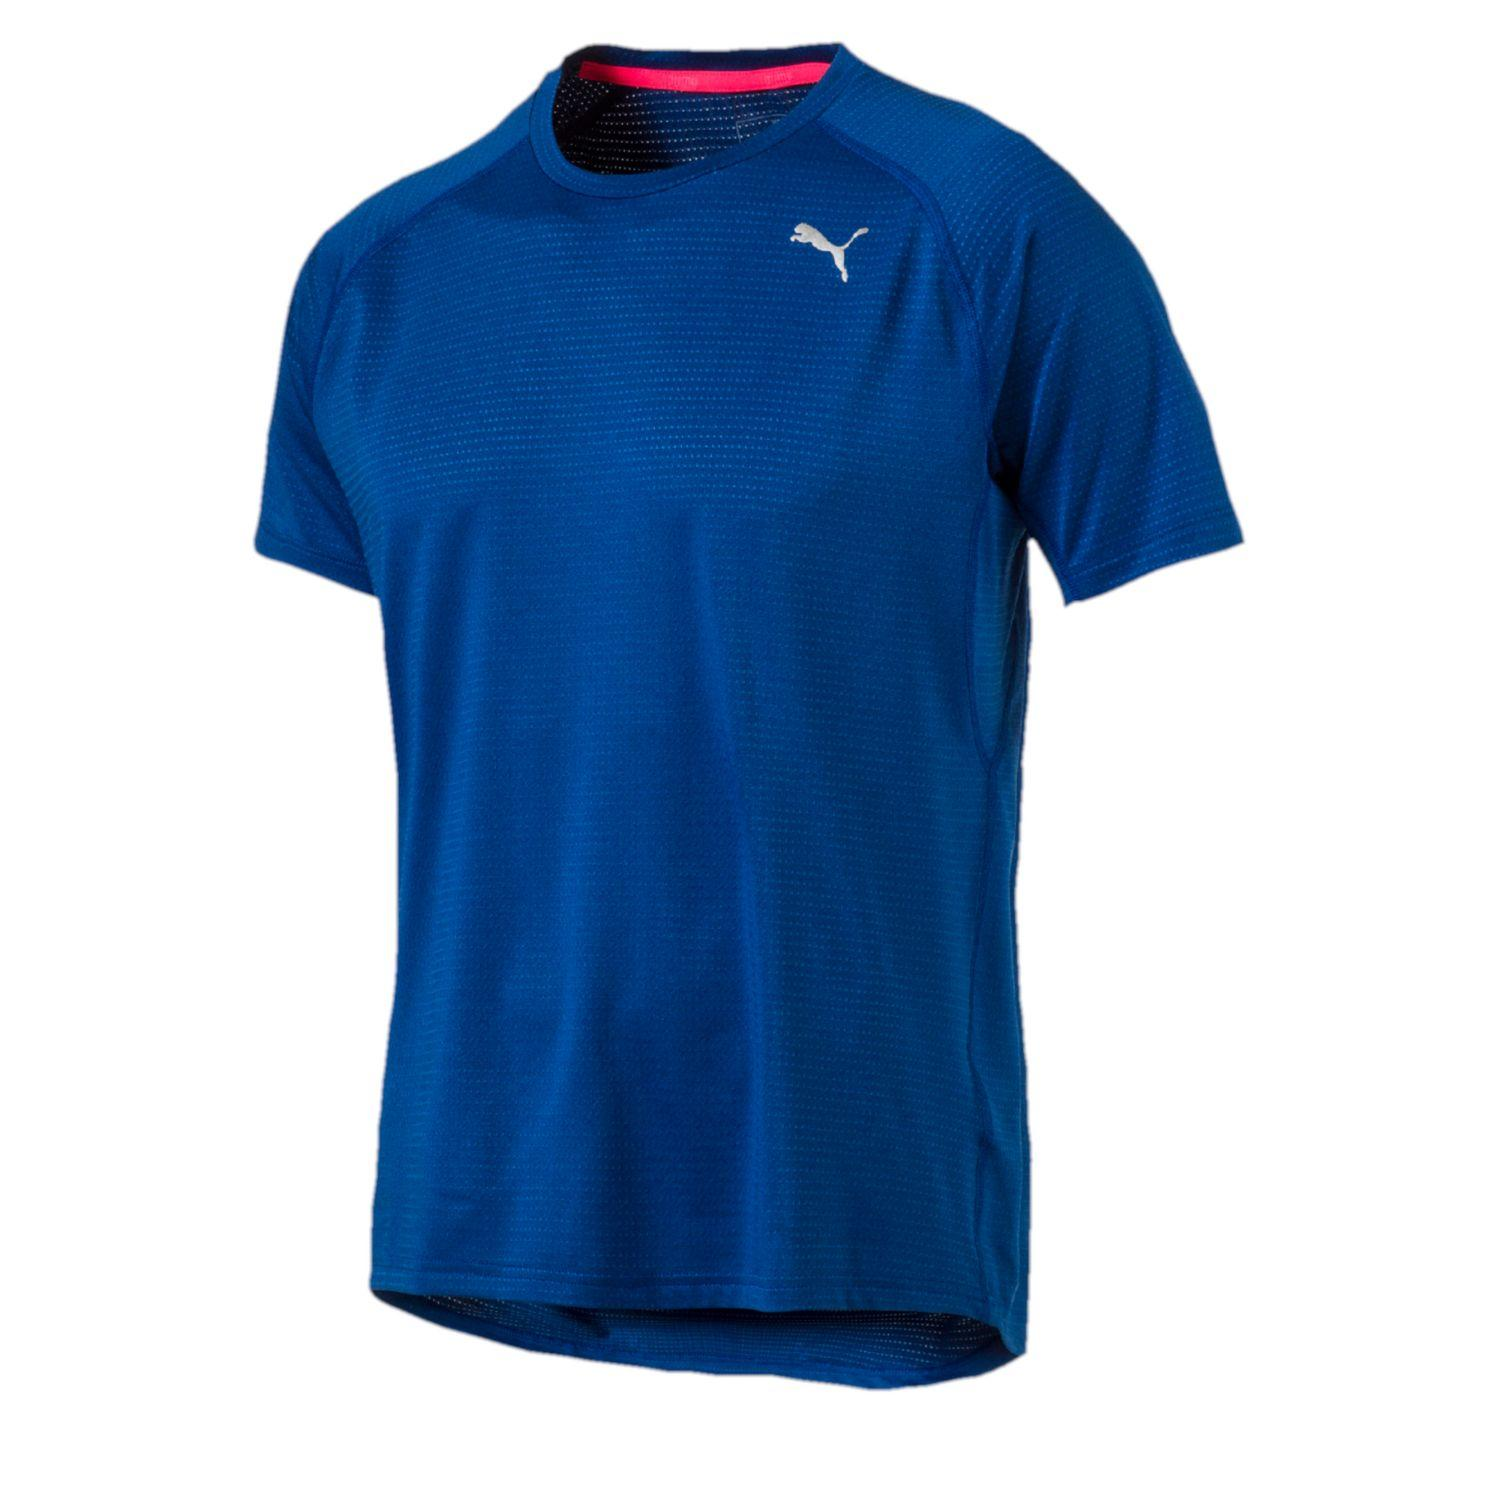 Puma T-shirt Speed S/s